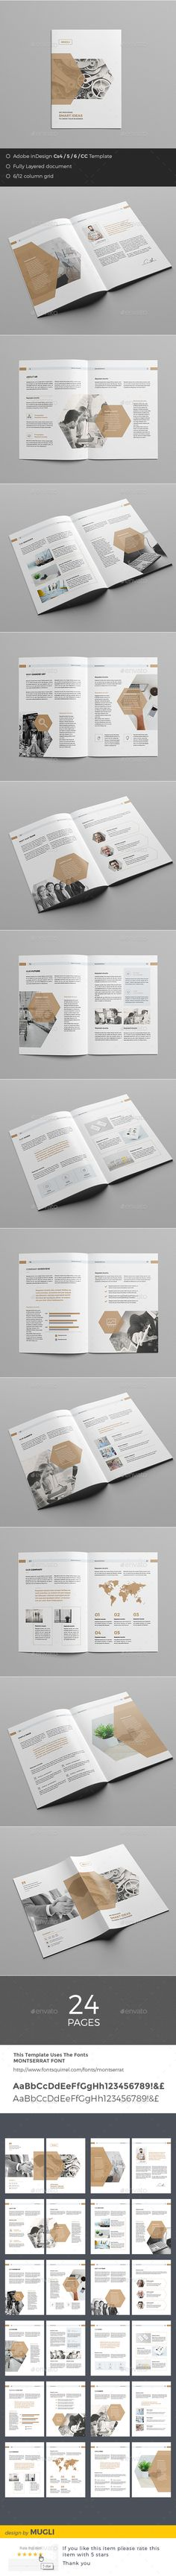 Business Brochure Template InDesign INDD. Download here: https://graphicriver.net/item/business-brochure/17375398?ref=ksioks